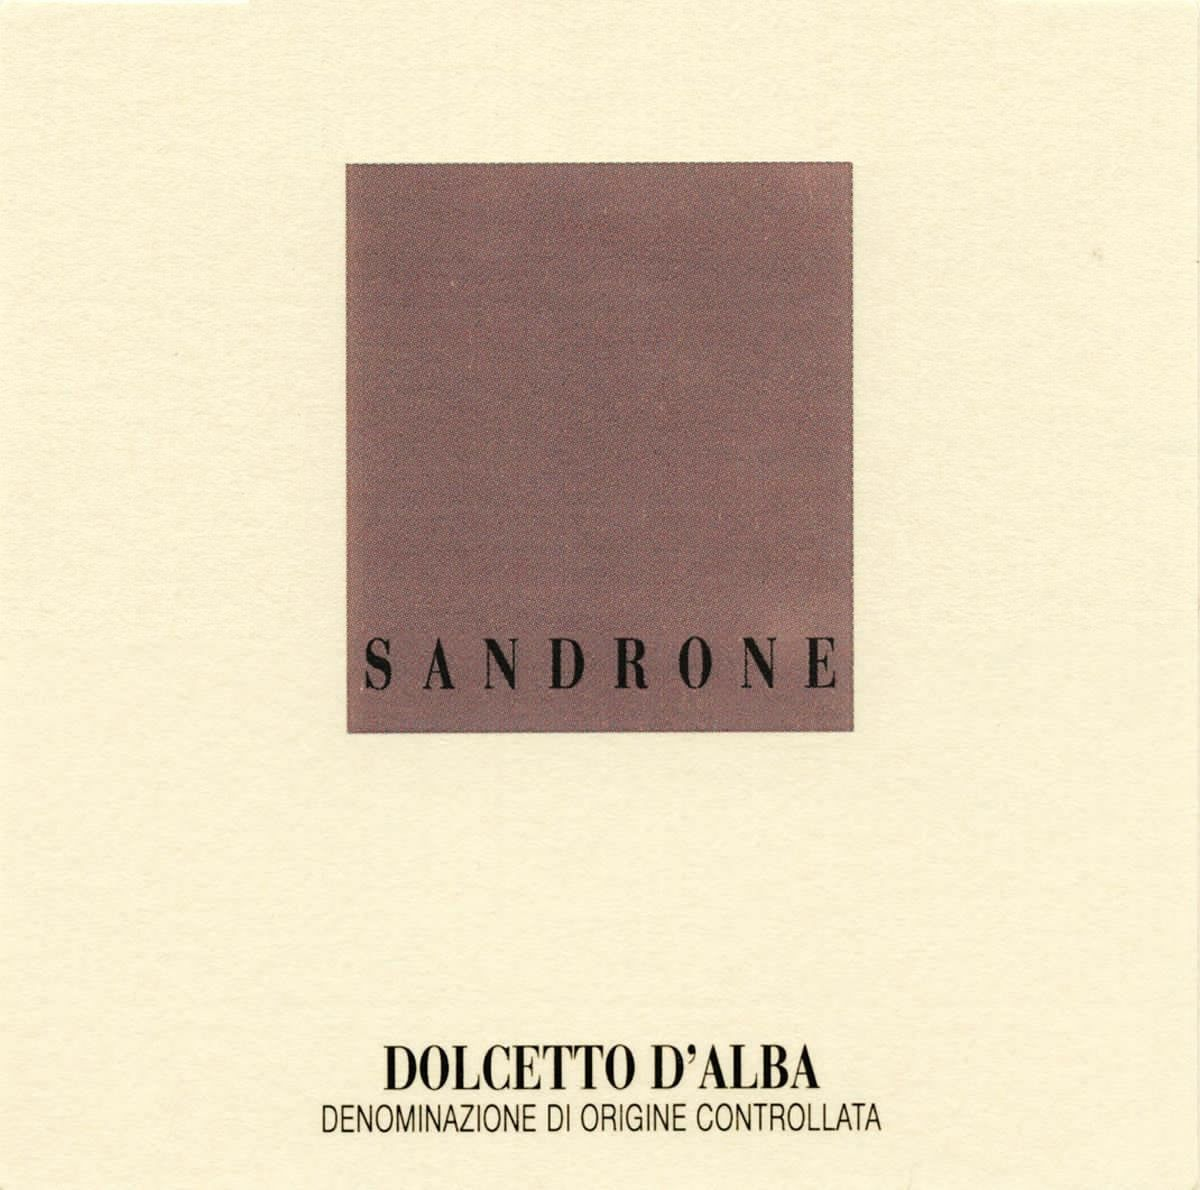 Sandrone Dolcetto d'Alba 2004 Front Label